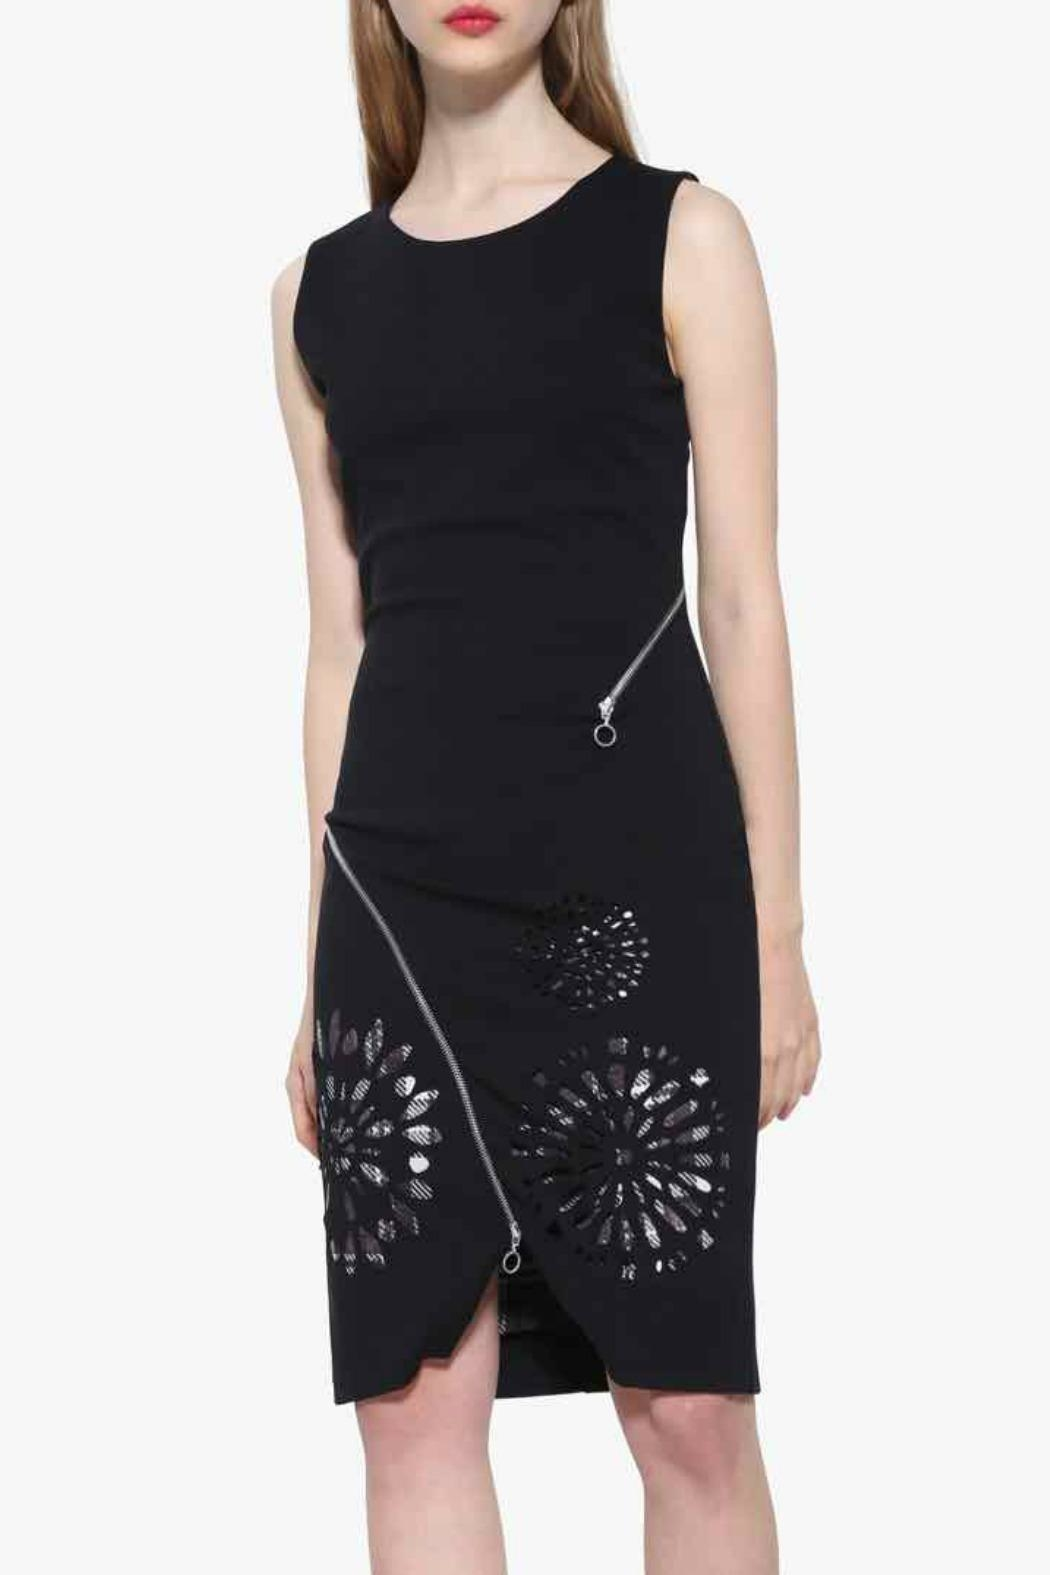 DESIGUAL Sweet Black Dress - Main Image